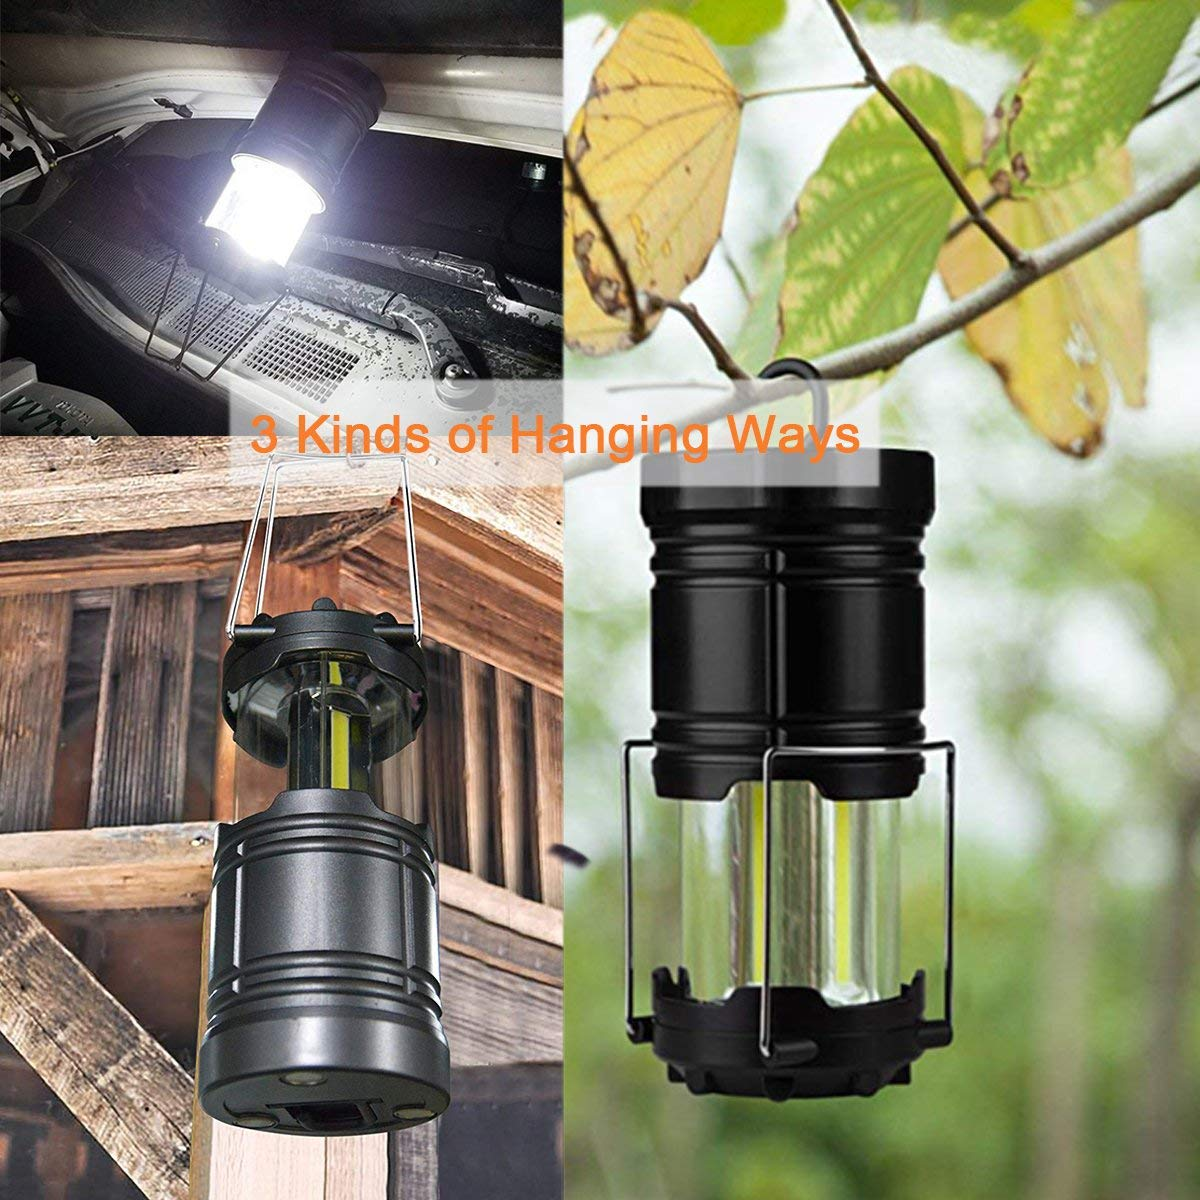 Amurgo LED Camping Lantern Flashlights Portable Lamp Waterproof Tent Light Survival Kit with Magnet Hook for Emergency Hurricane Outage (Collapsible) Outdoor Home (Pckage of 1)